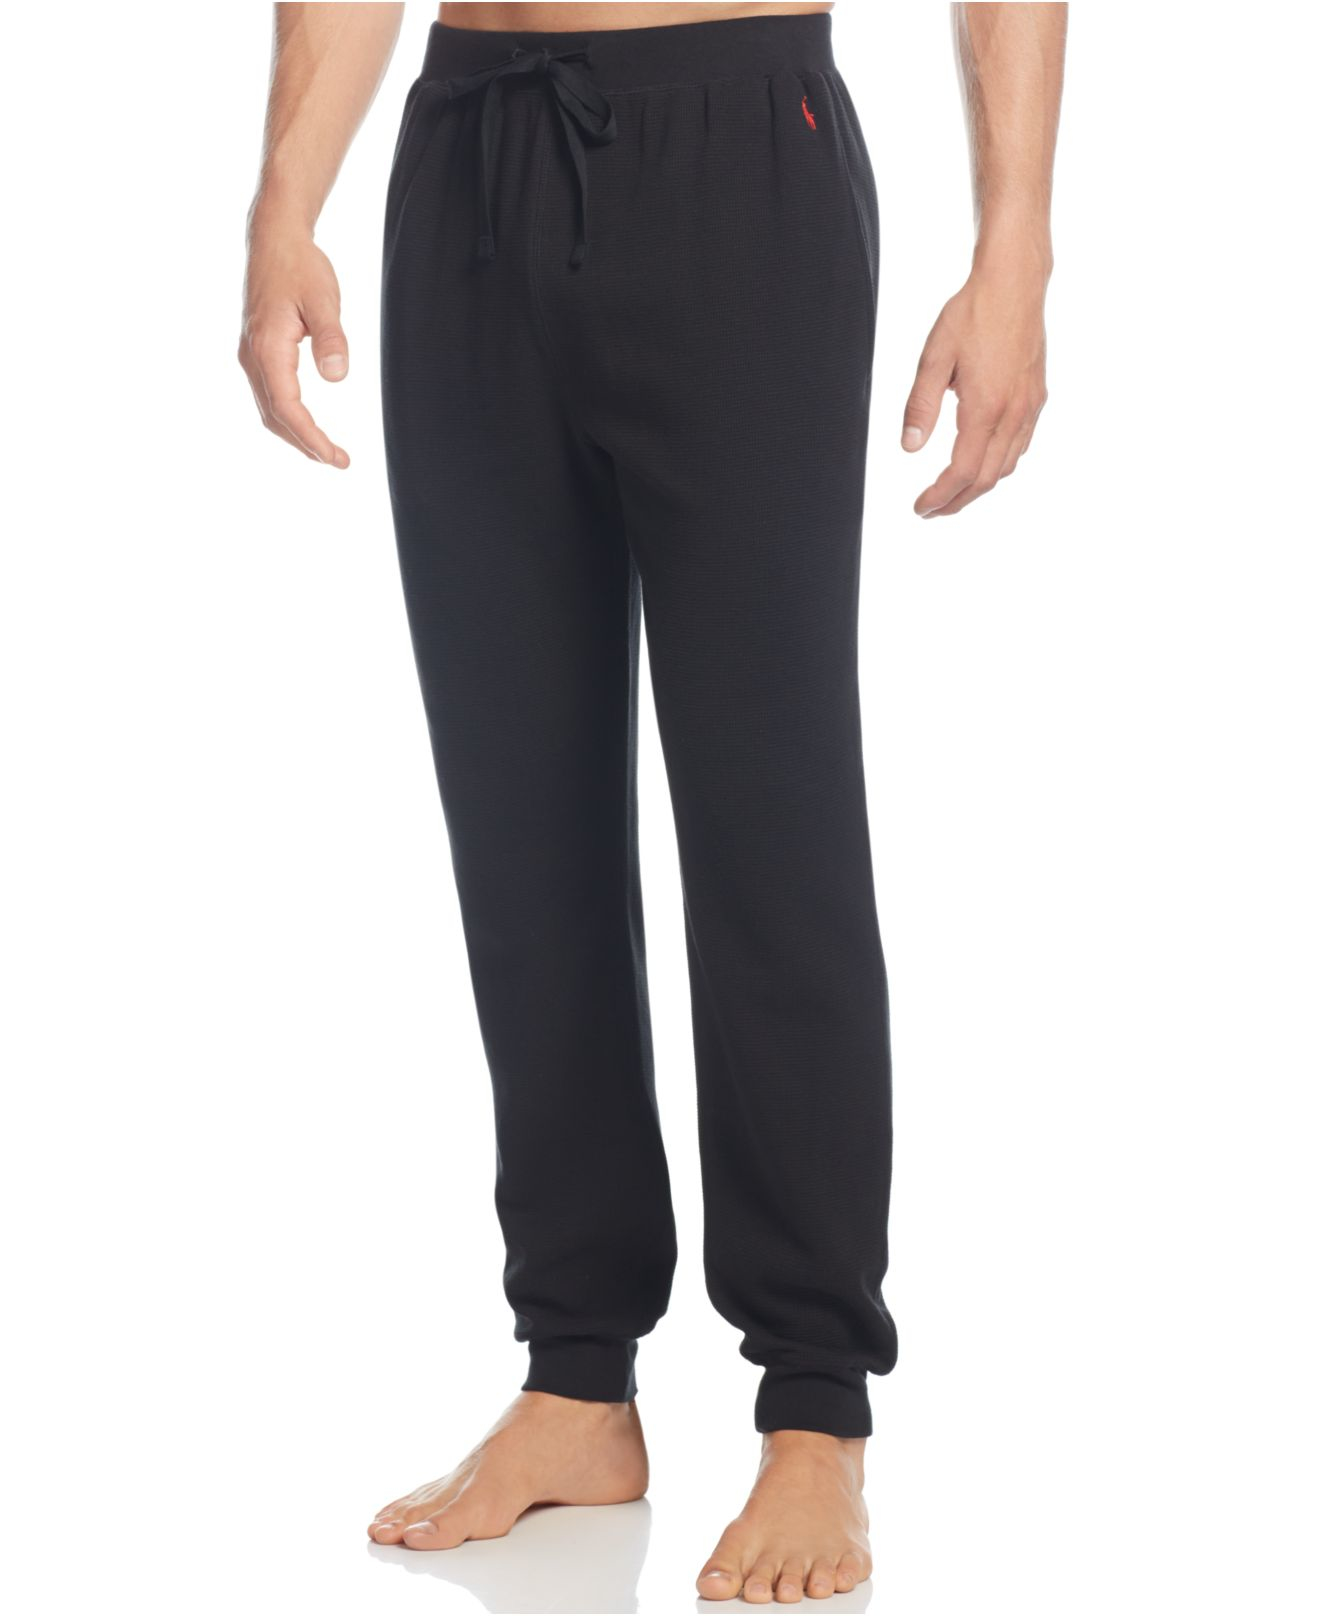 polo ralph lauren thermal jogger pants in black for men